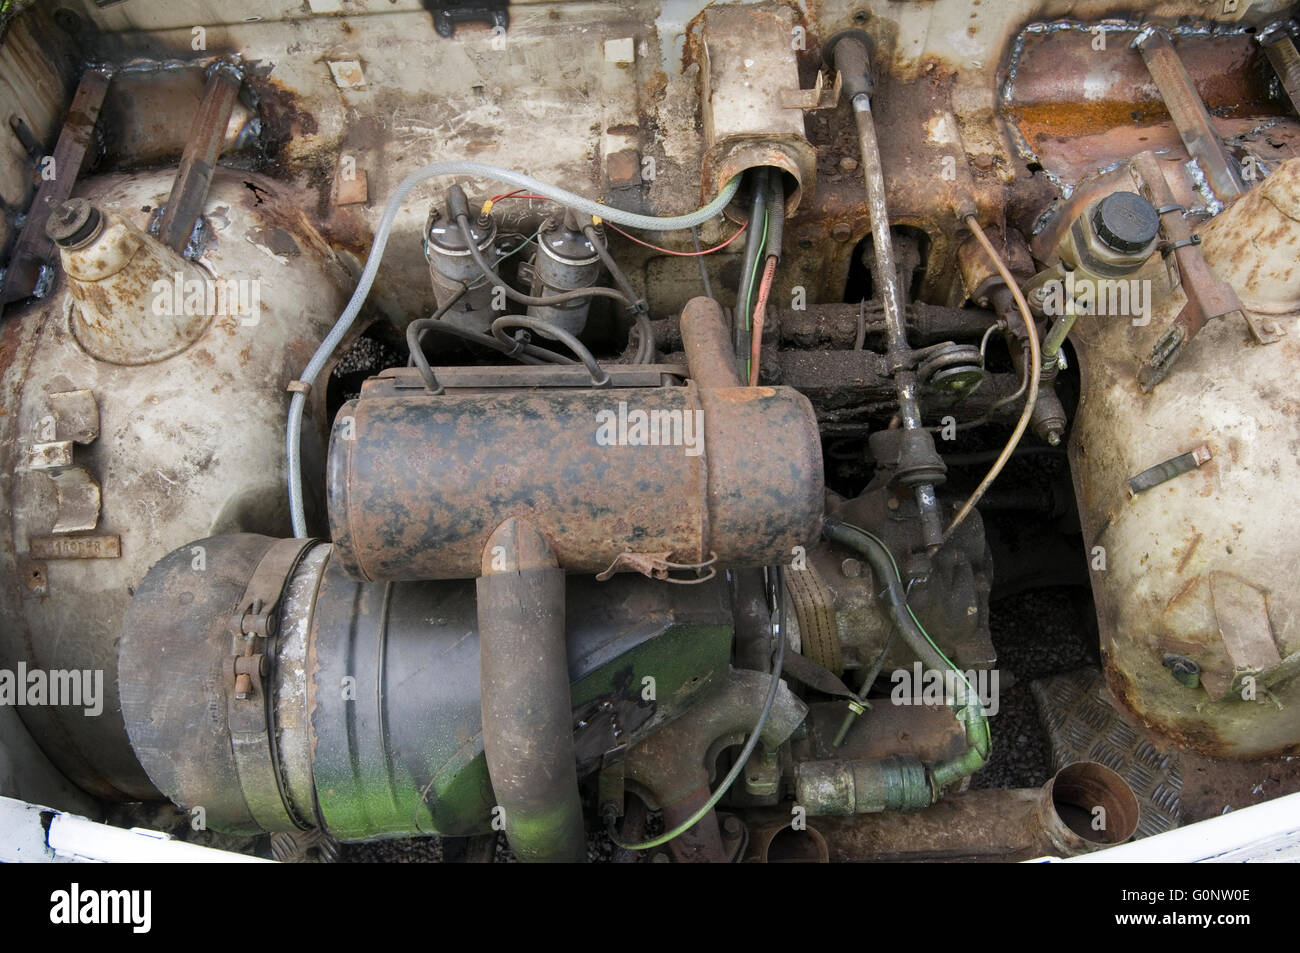 trabant car cars engine 500cc two stroke motor internal combustion can be removed with one spanner - Stock Image